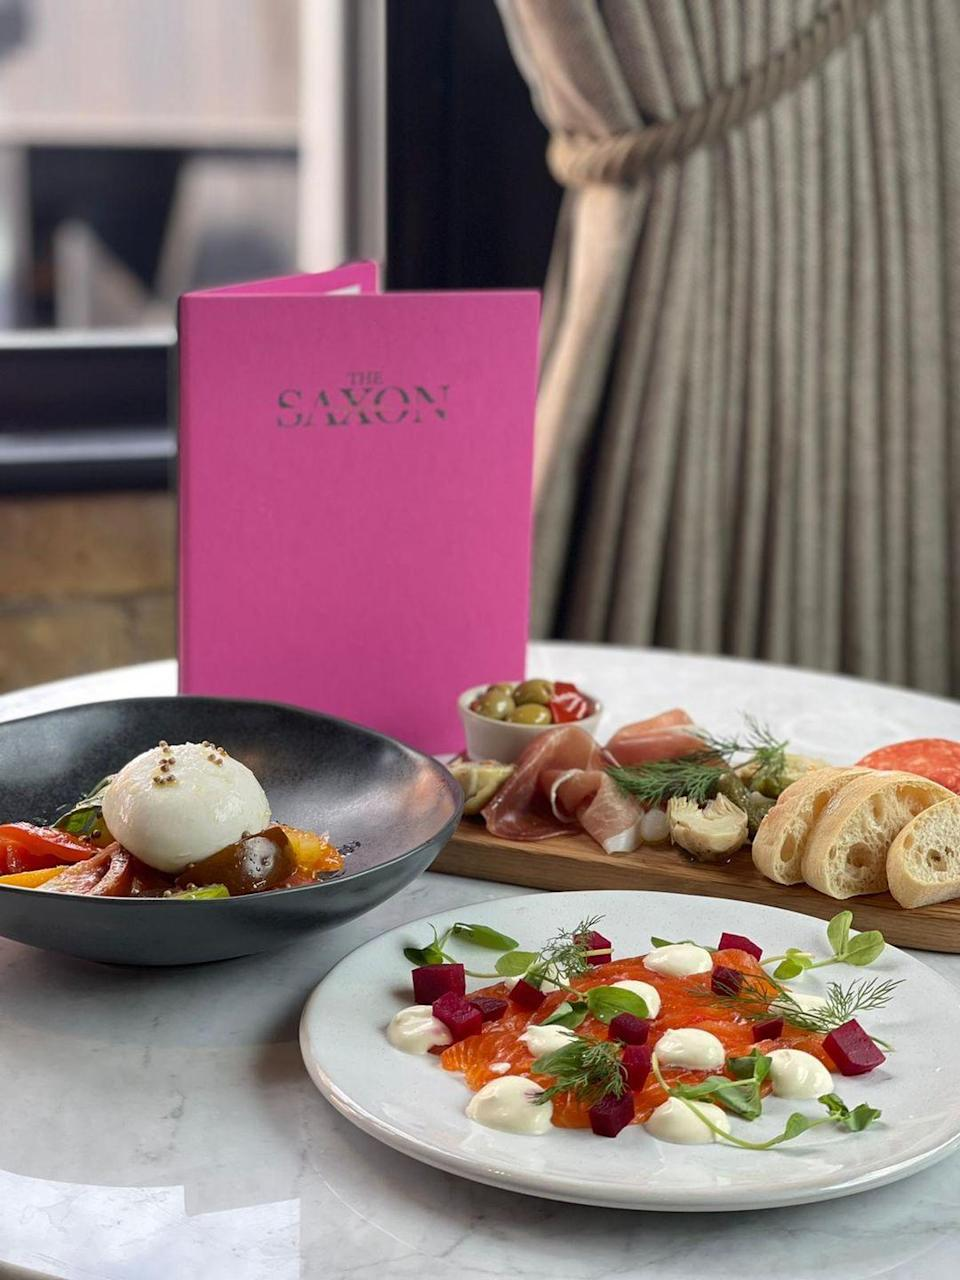 """<p><strong>Happy hour deal:</strong></p><p>The newly opened south London venue offers two for one cocktails from Tuesday - Friday, 4 and 7pm and on the weekend between 4 and 6pm.</p><p>Find out more <a href=""""https://thesaxon.co.uk/"""" rel=""""nofollow noopener"""" target=""""_blank"""" data-ylk=""""slk:here"""" class=""""link rapid-noclick-resp"""">here</a>.</p>"""